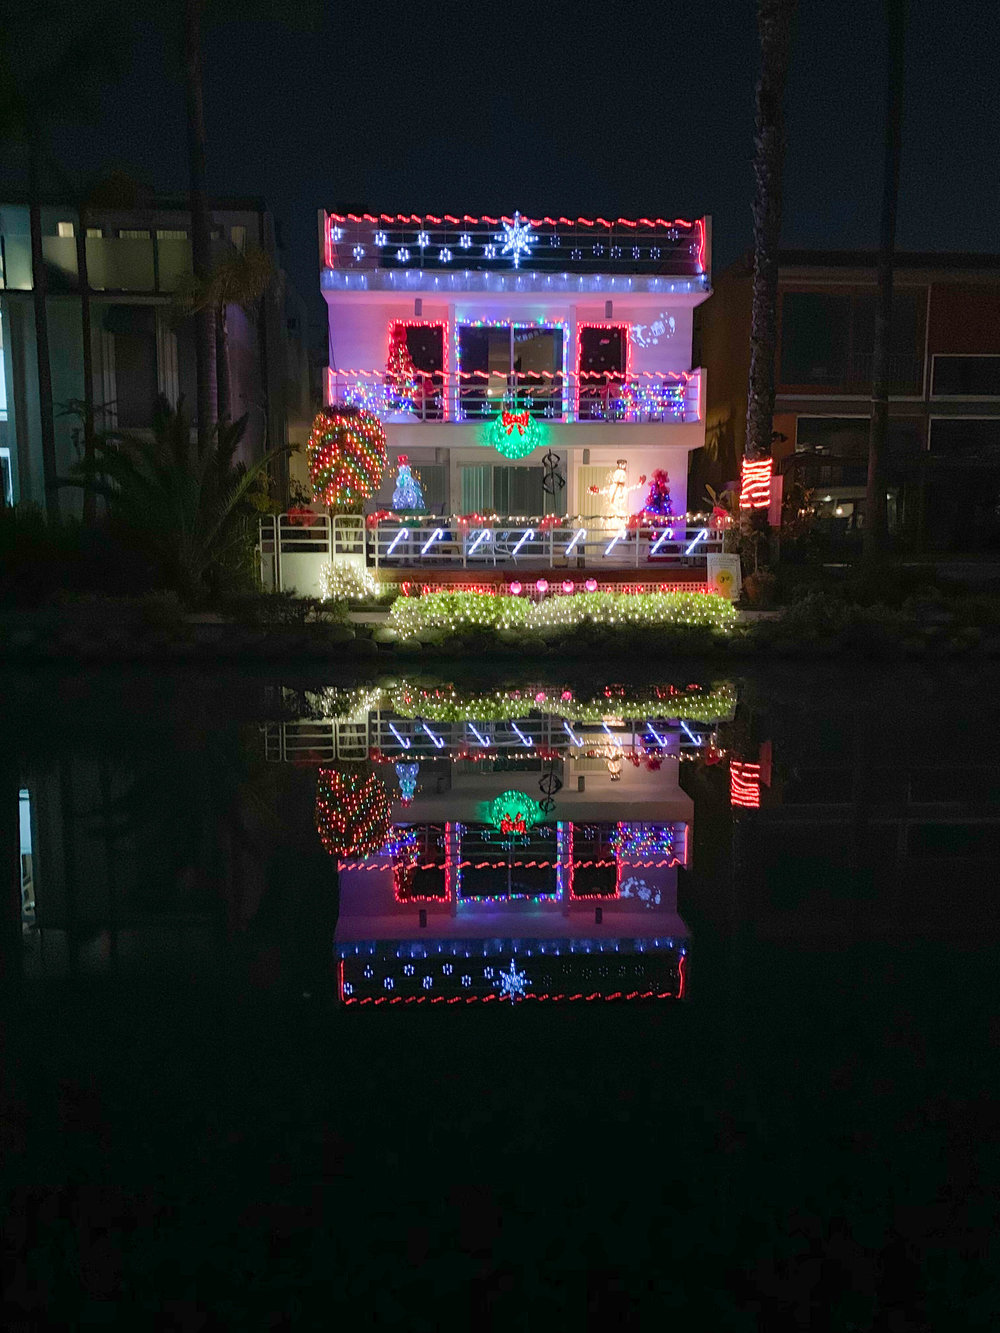 Christmas Lights in Los Angeles Venice Canals 3rd place winner